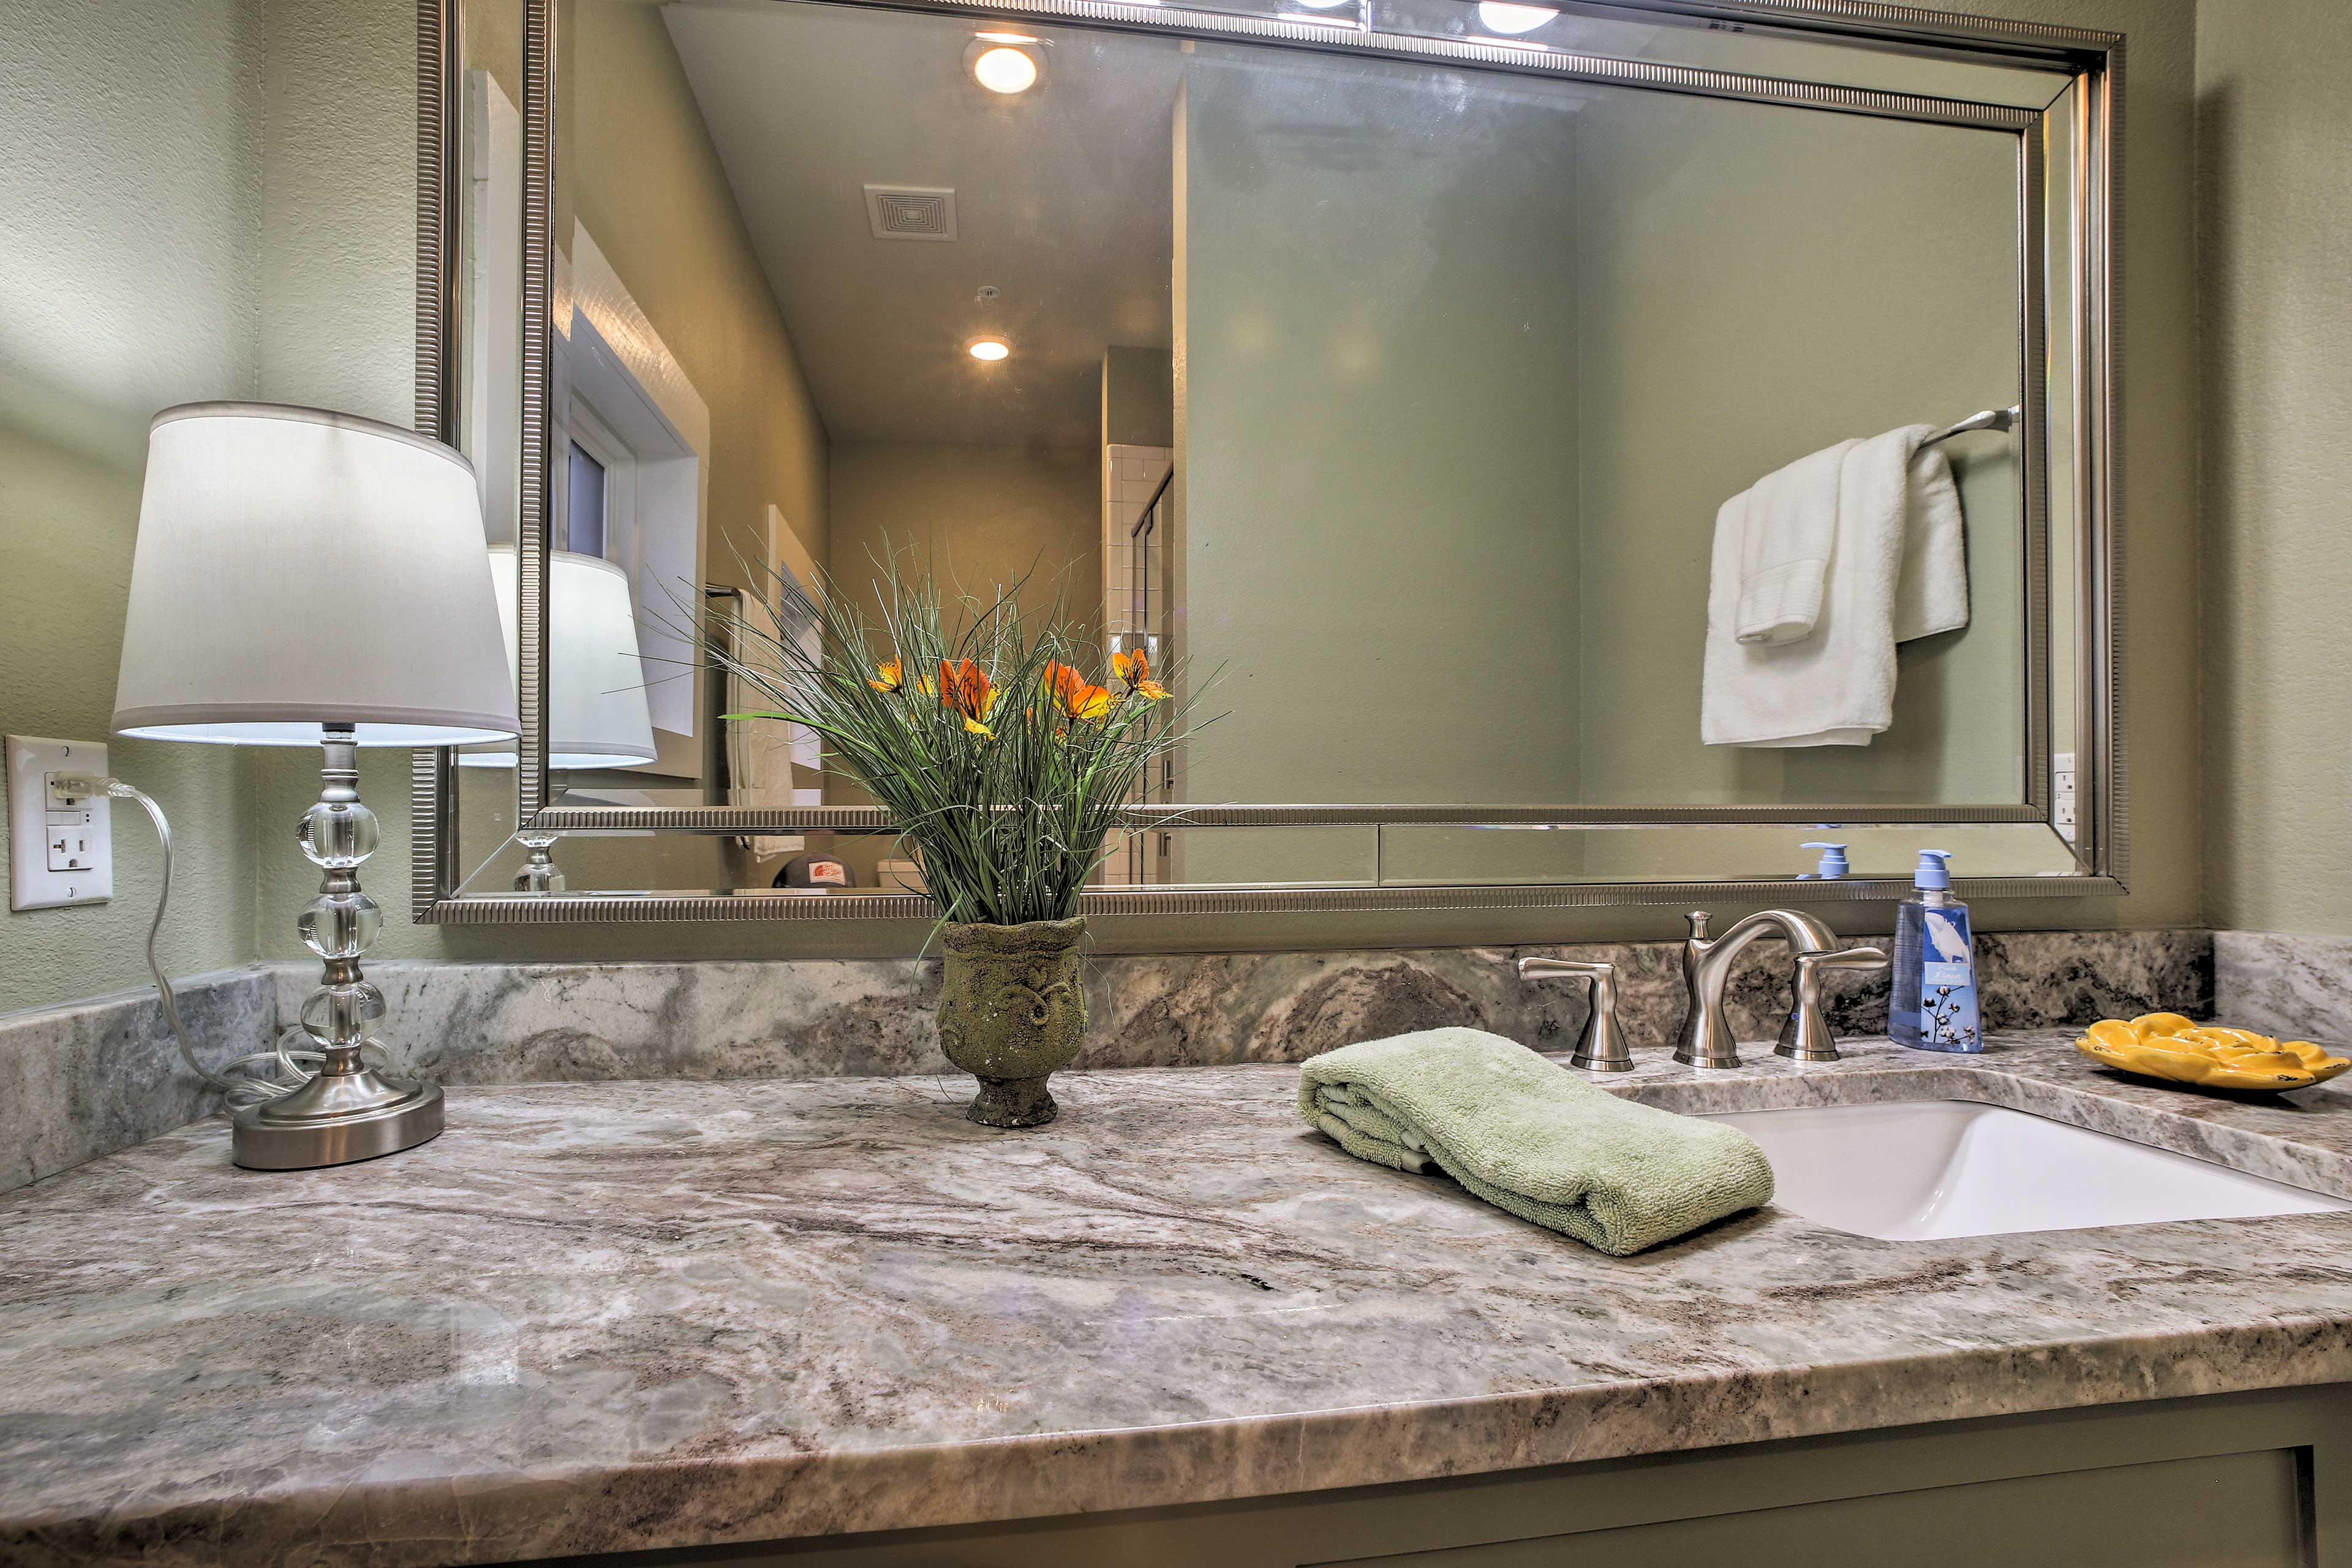 Rinse off the day in the luxurious bathroom.